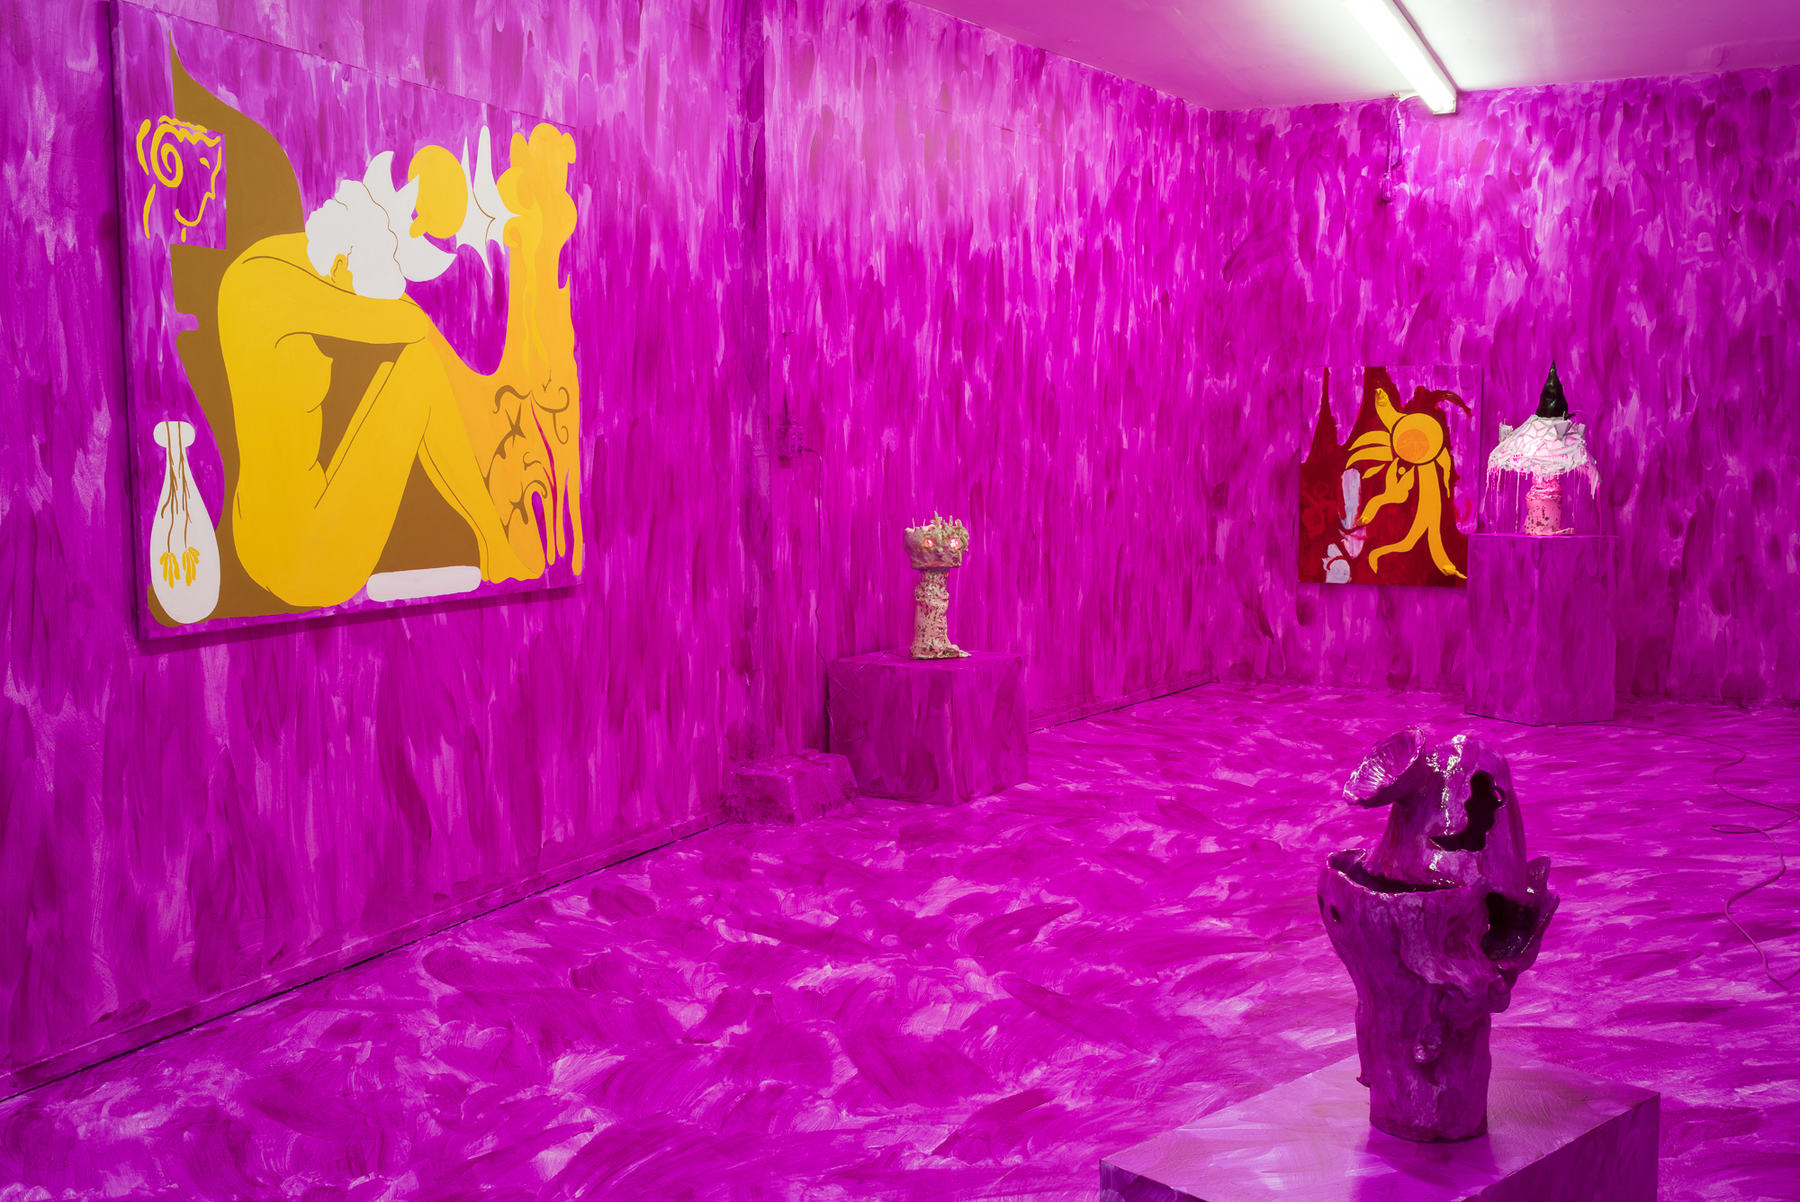 Chris Lux_With Nude Spoons_Installation view4